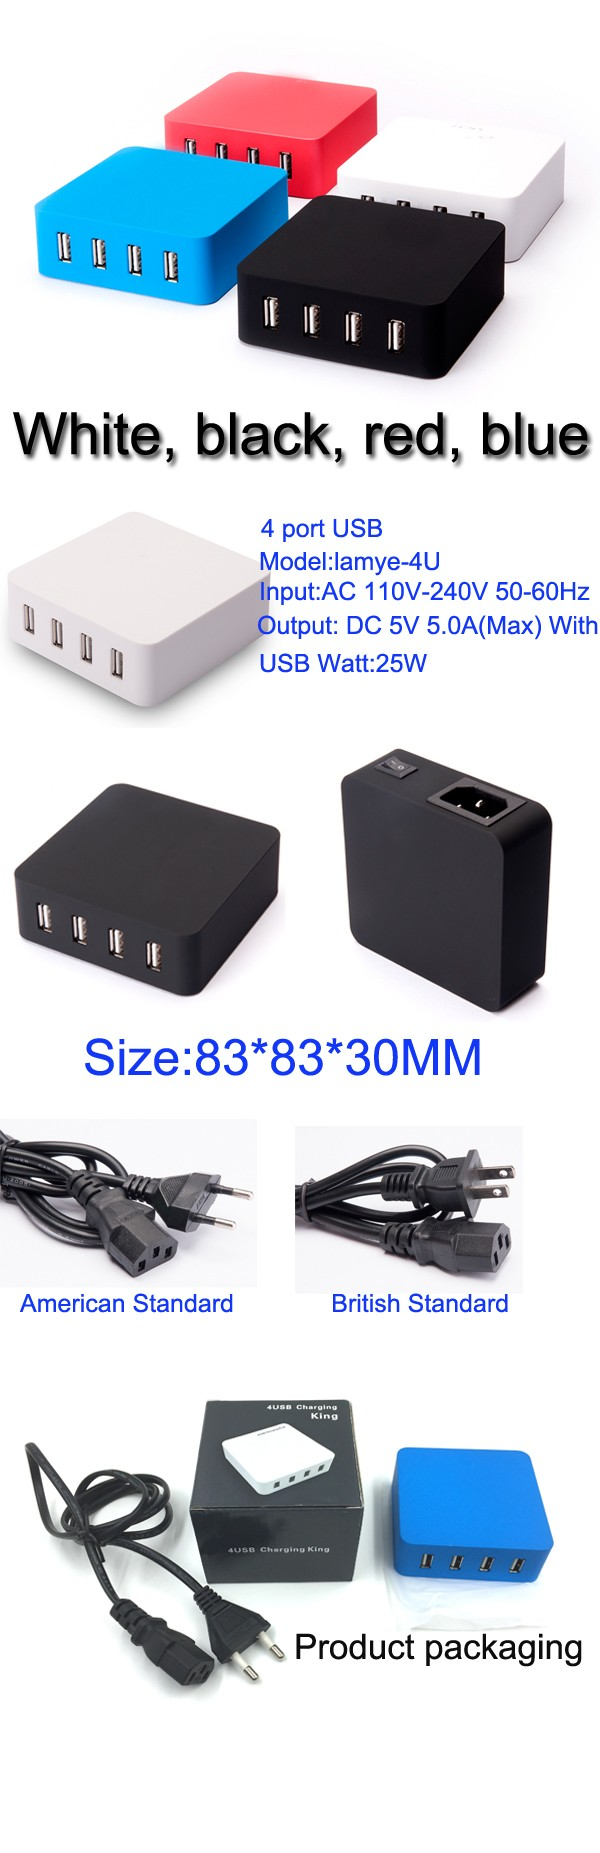 2018 4 Port 5 Port Multi-Port Compact Size USB Charger UL FCC CE Approved